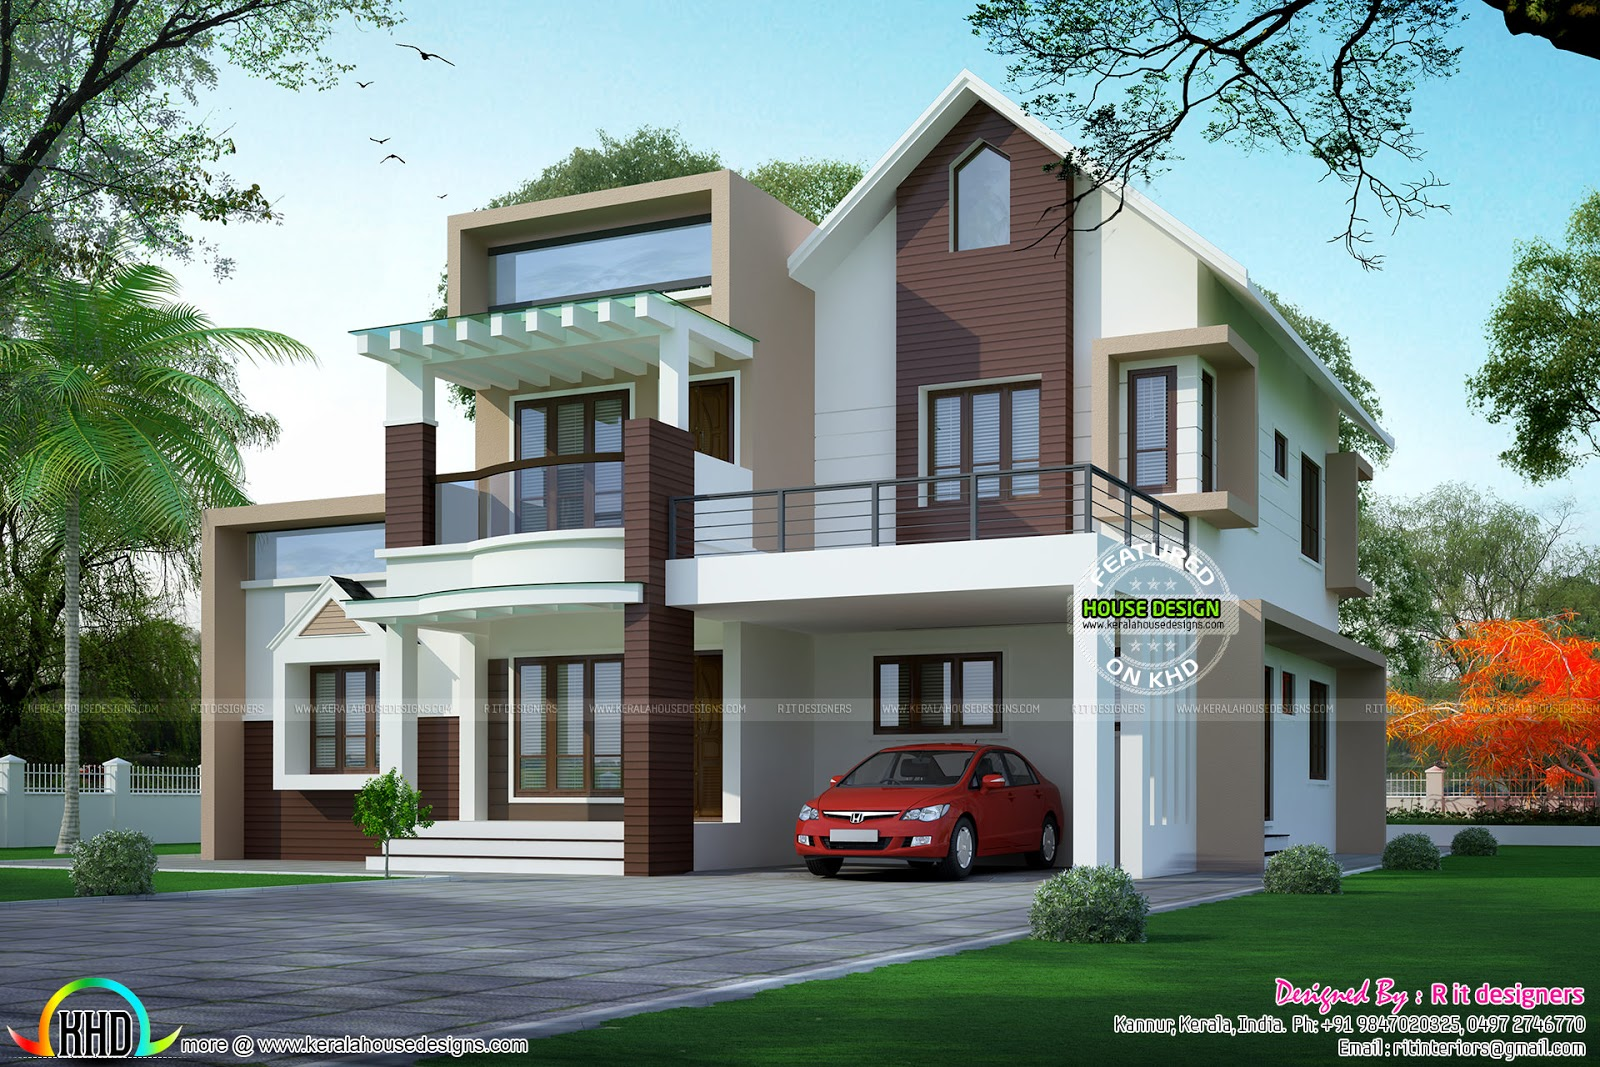 310 sq yd contemporary house mix sloping roof kerala for Contemporary style homes in kerala